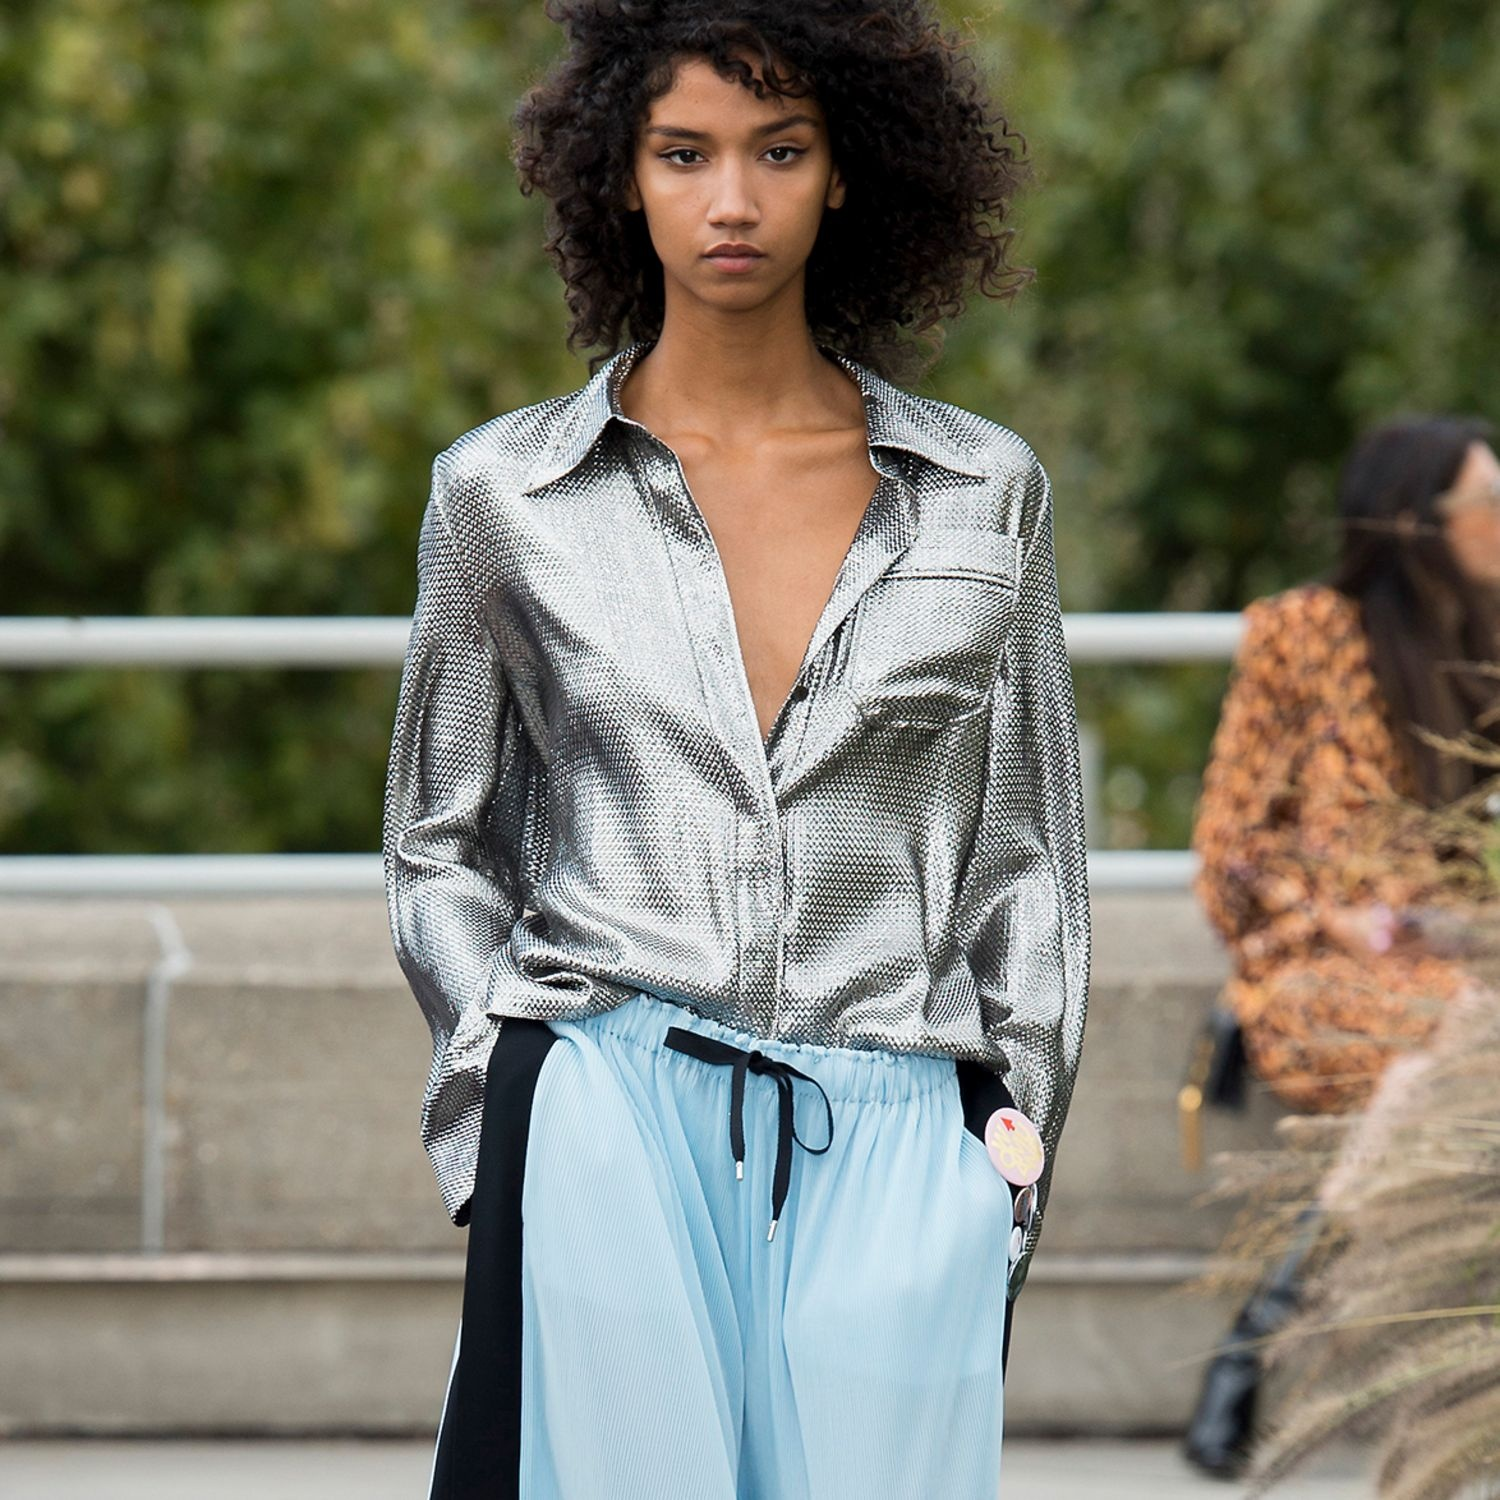 Sale Styles To Shop at The Outnet